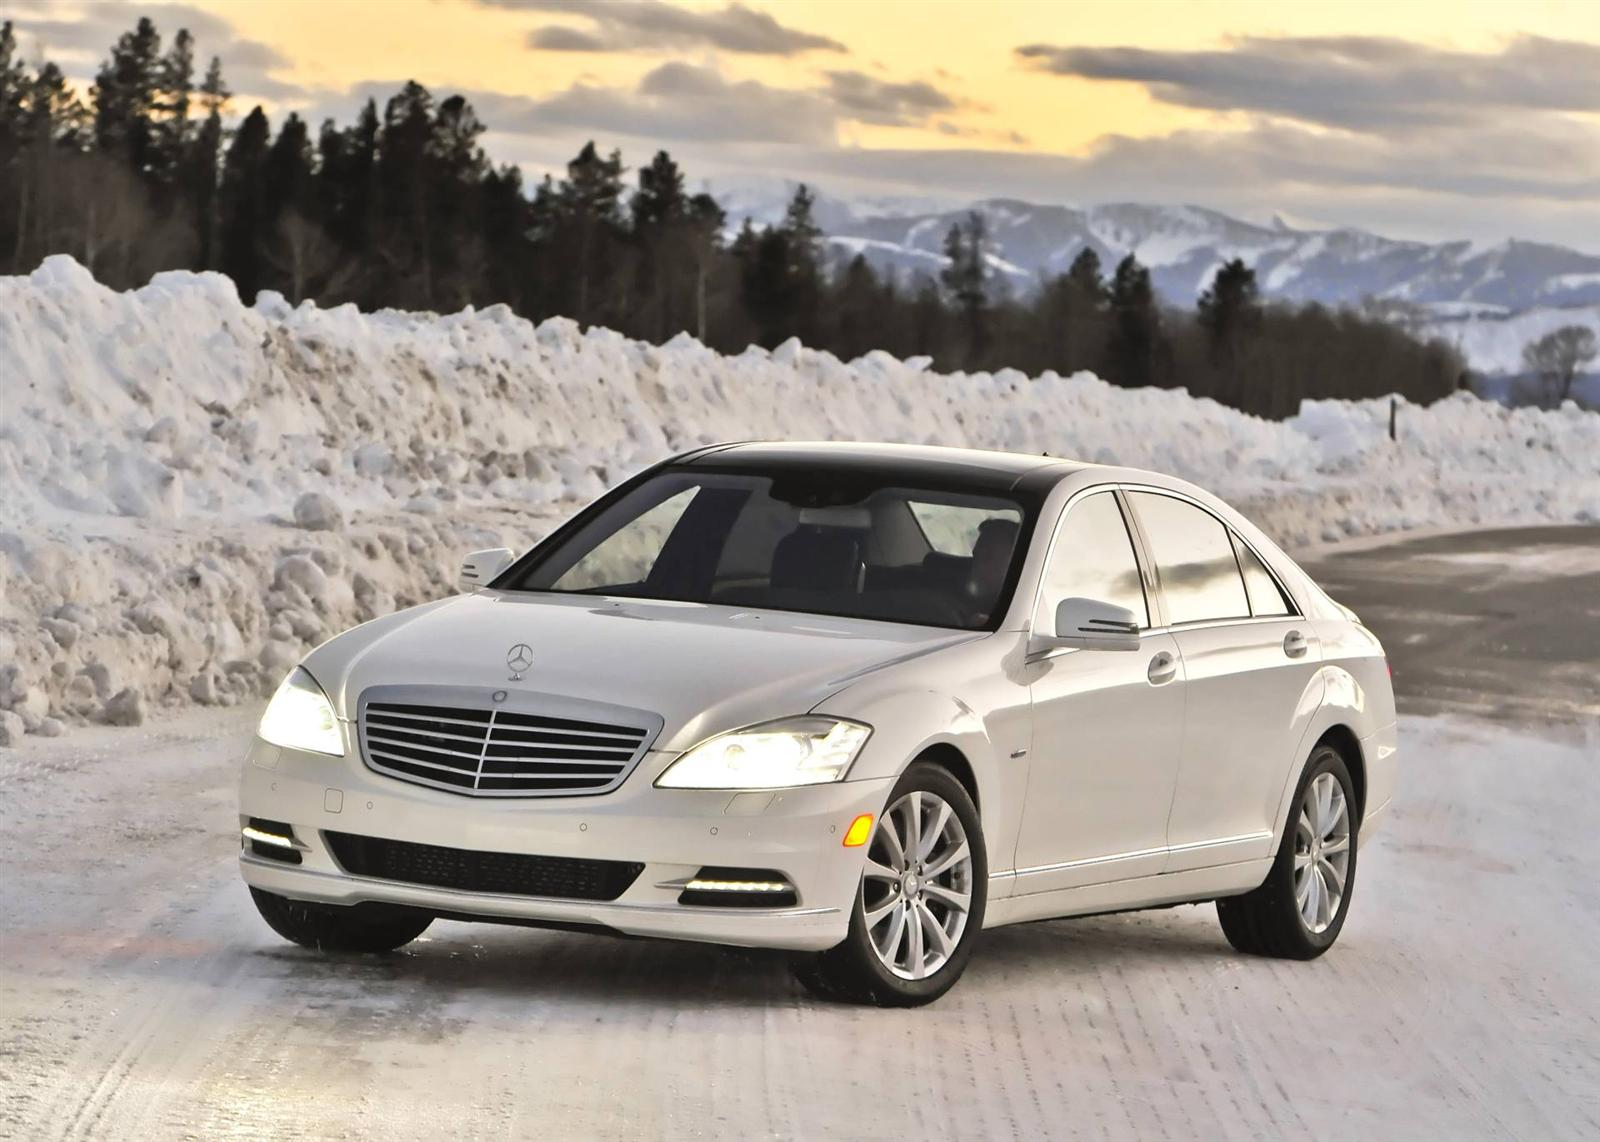 2013 mercedes benz s class image 13 for Mercedes benz 2013 s550